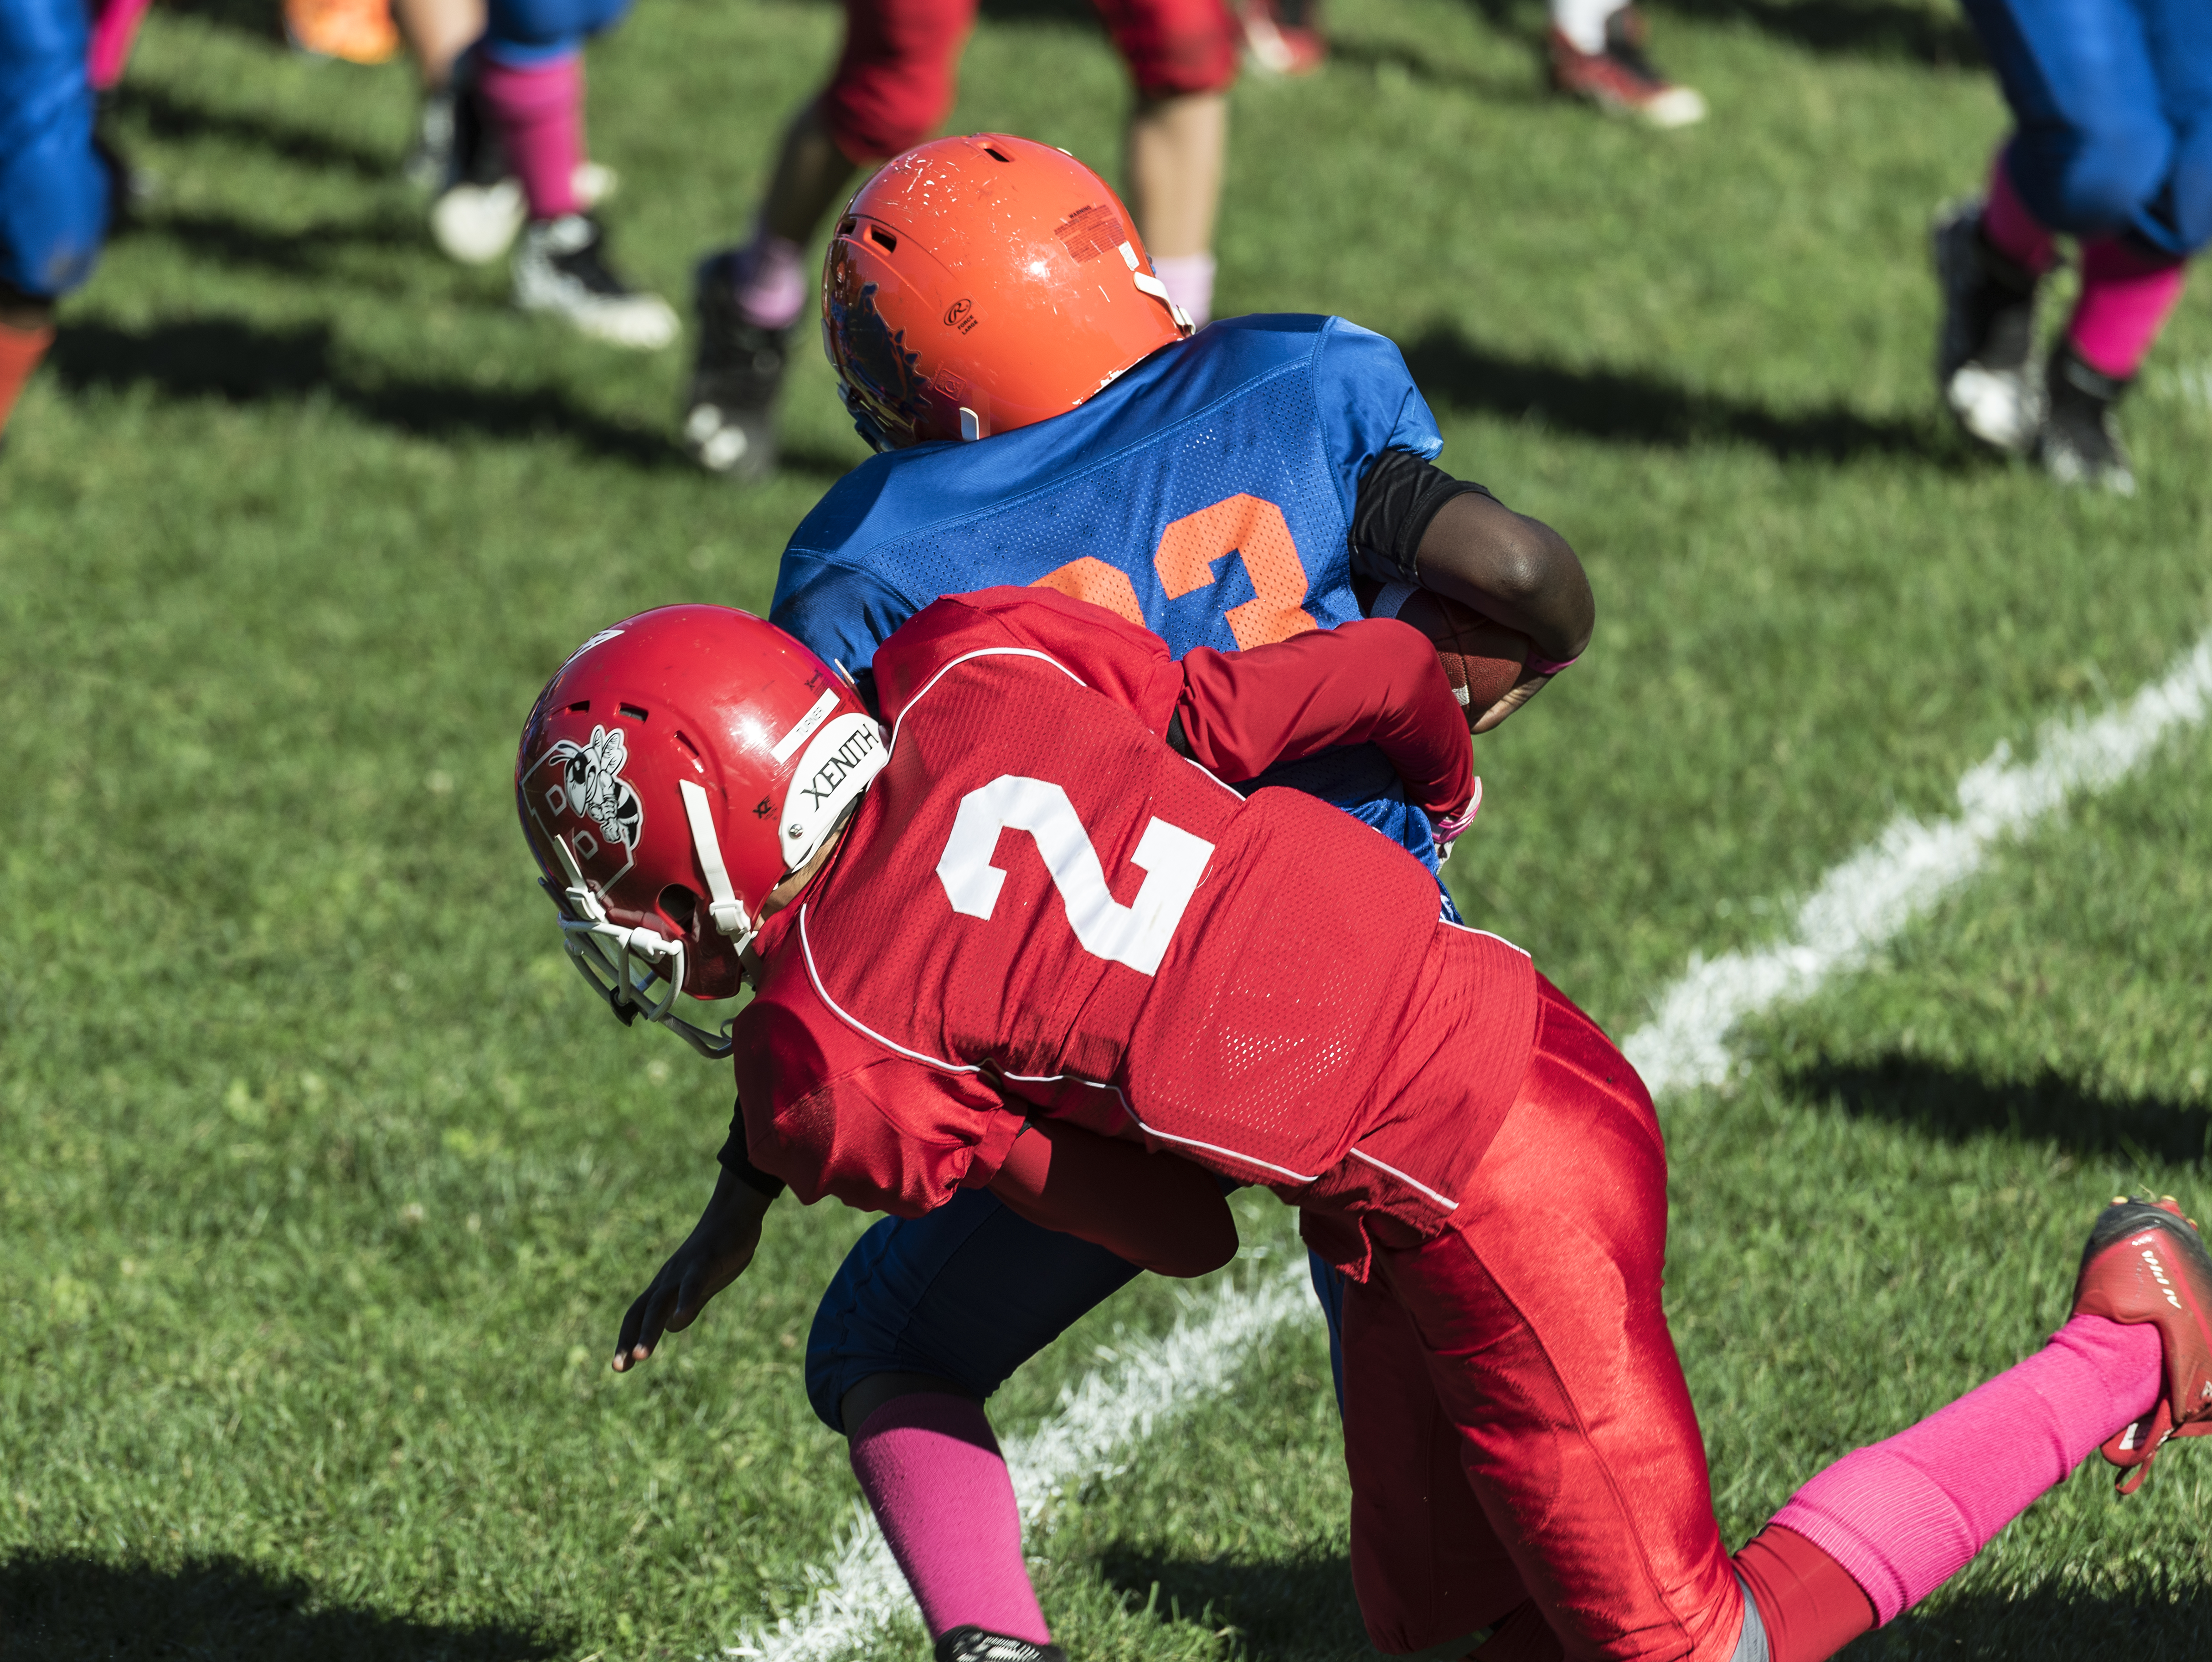 Making a tackle during a Pop Warner football game.